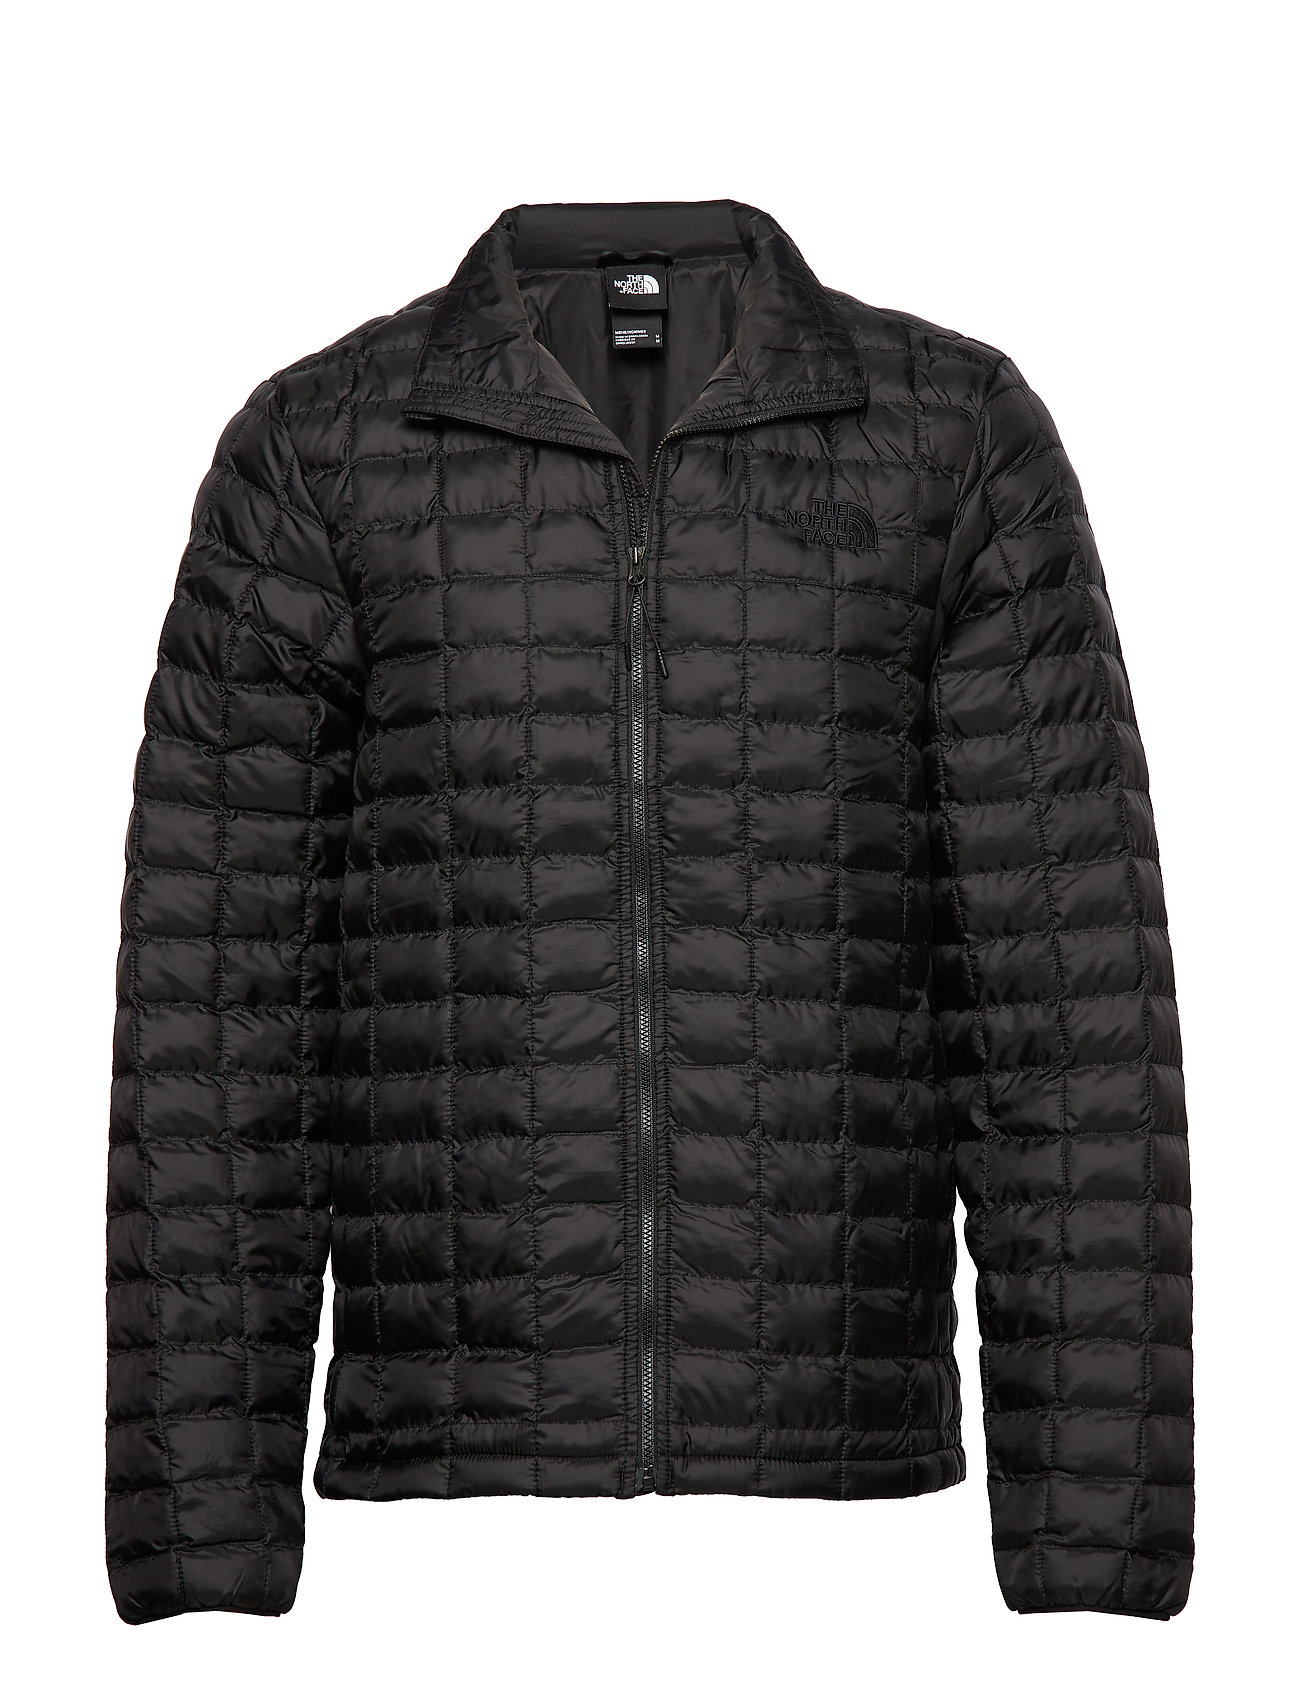 The North Face M TBLL ECO JKT - TNF BLACK MATTE